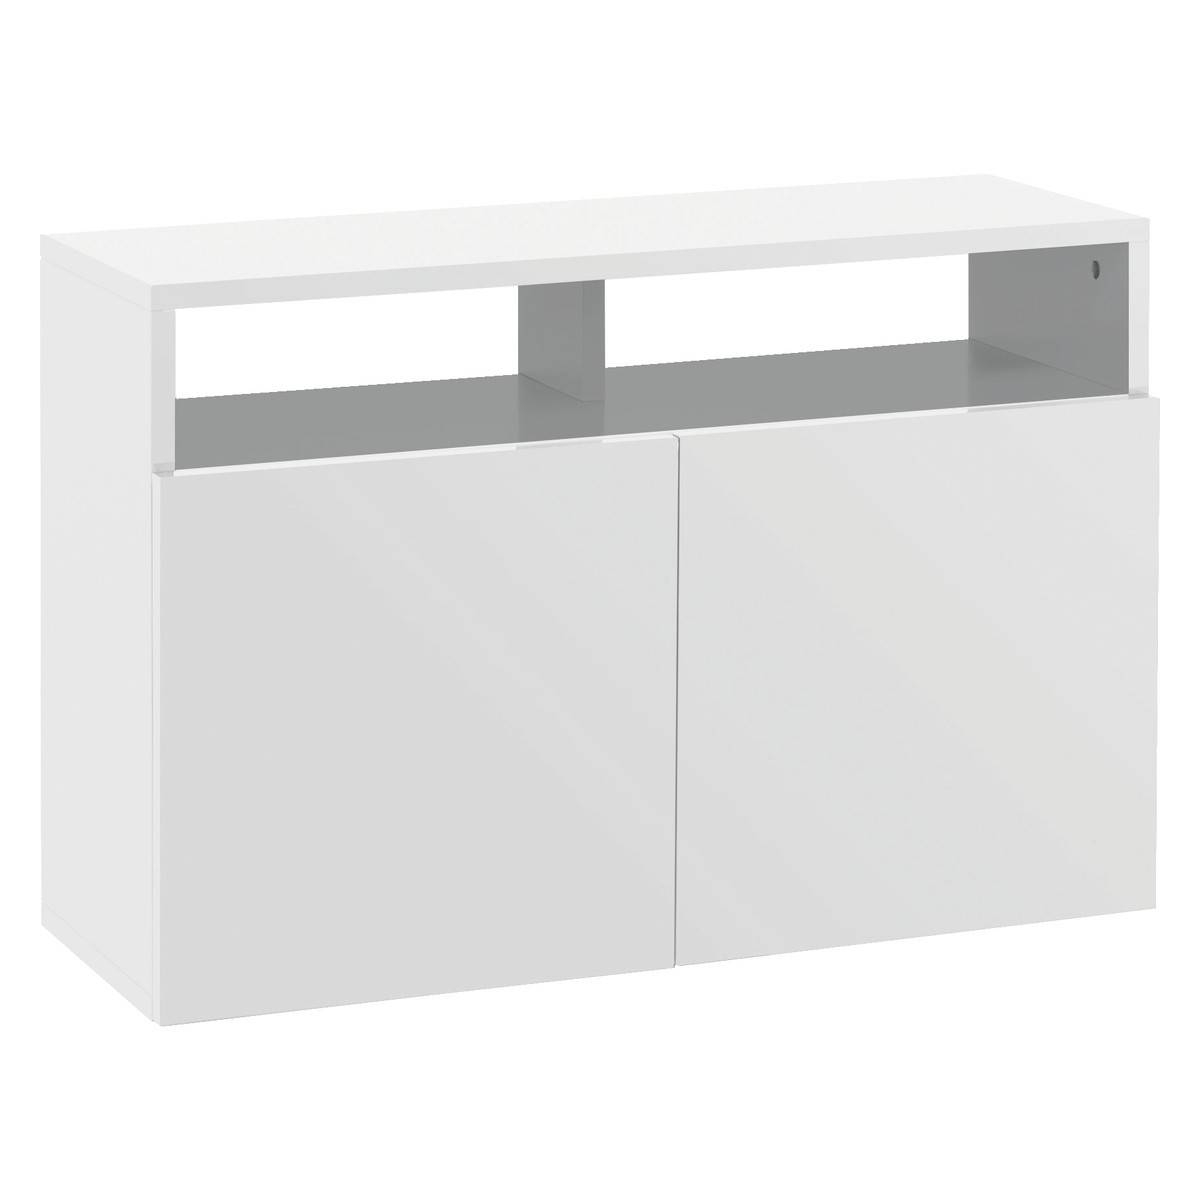 Kubrik White High Gloss Small Sideboard | Buy Now At Habitat Uk Within Gloss White Sideboards (View 4 of 15)